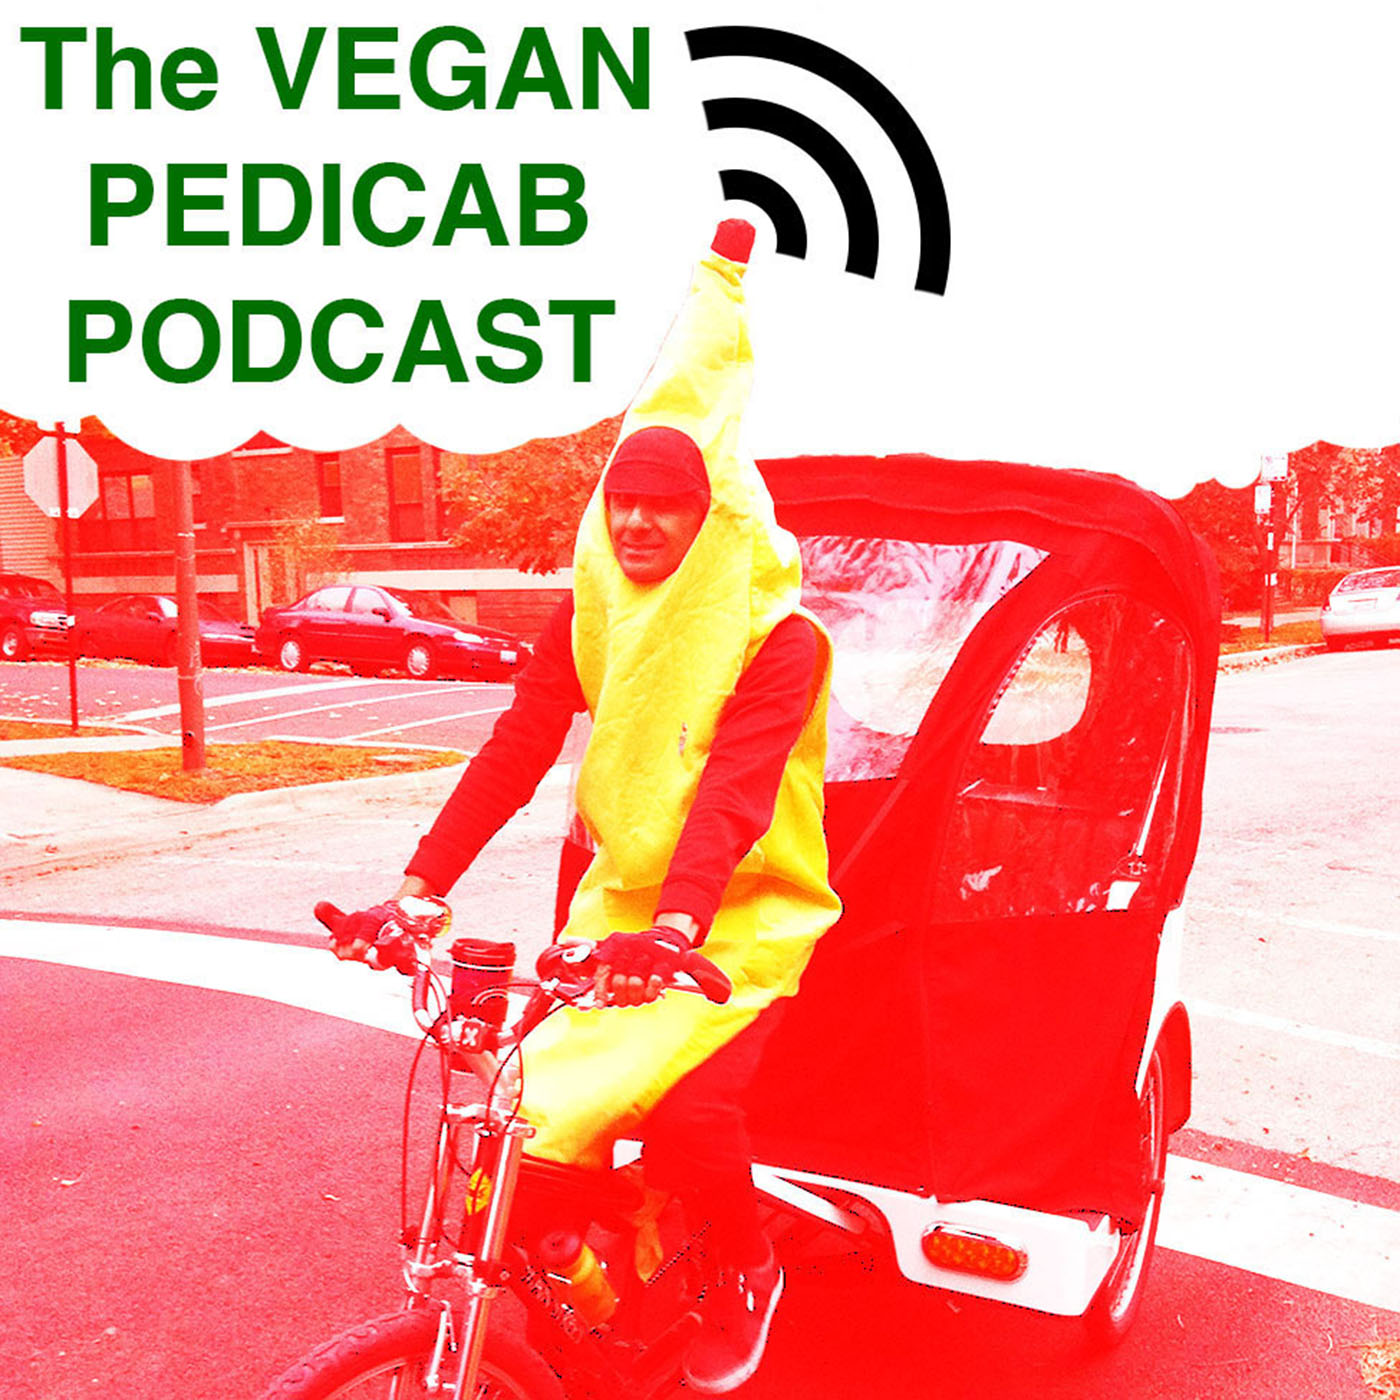 Vegan Pedicab Podcast